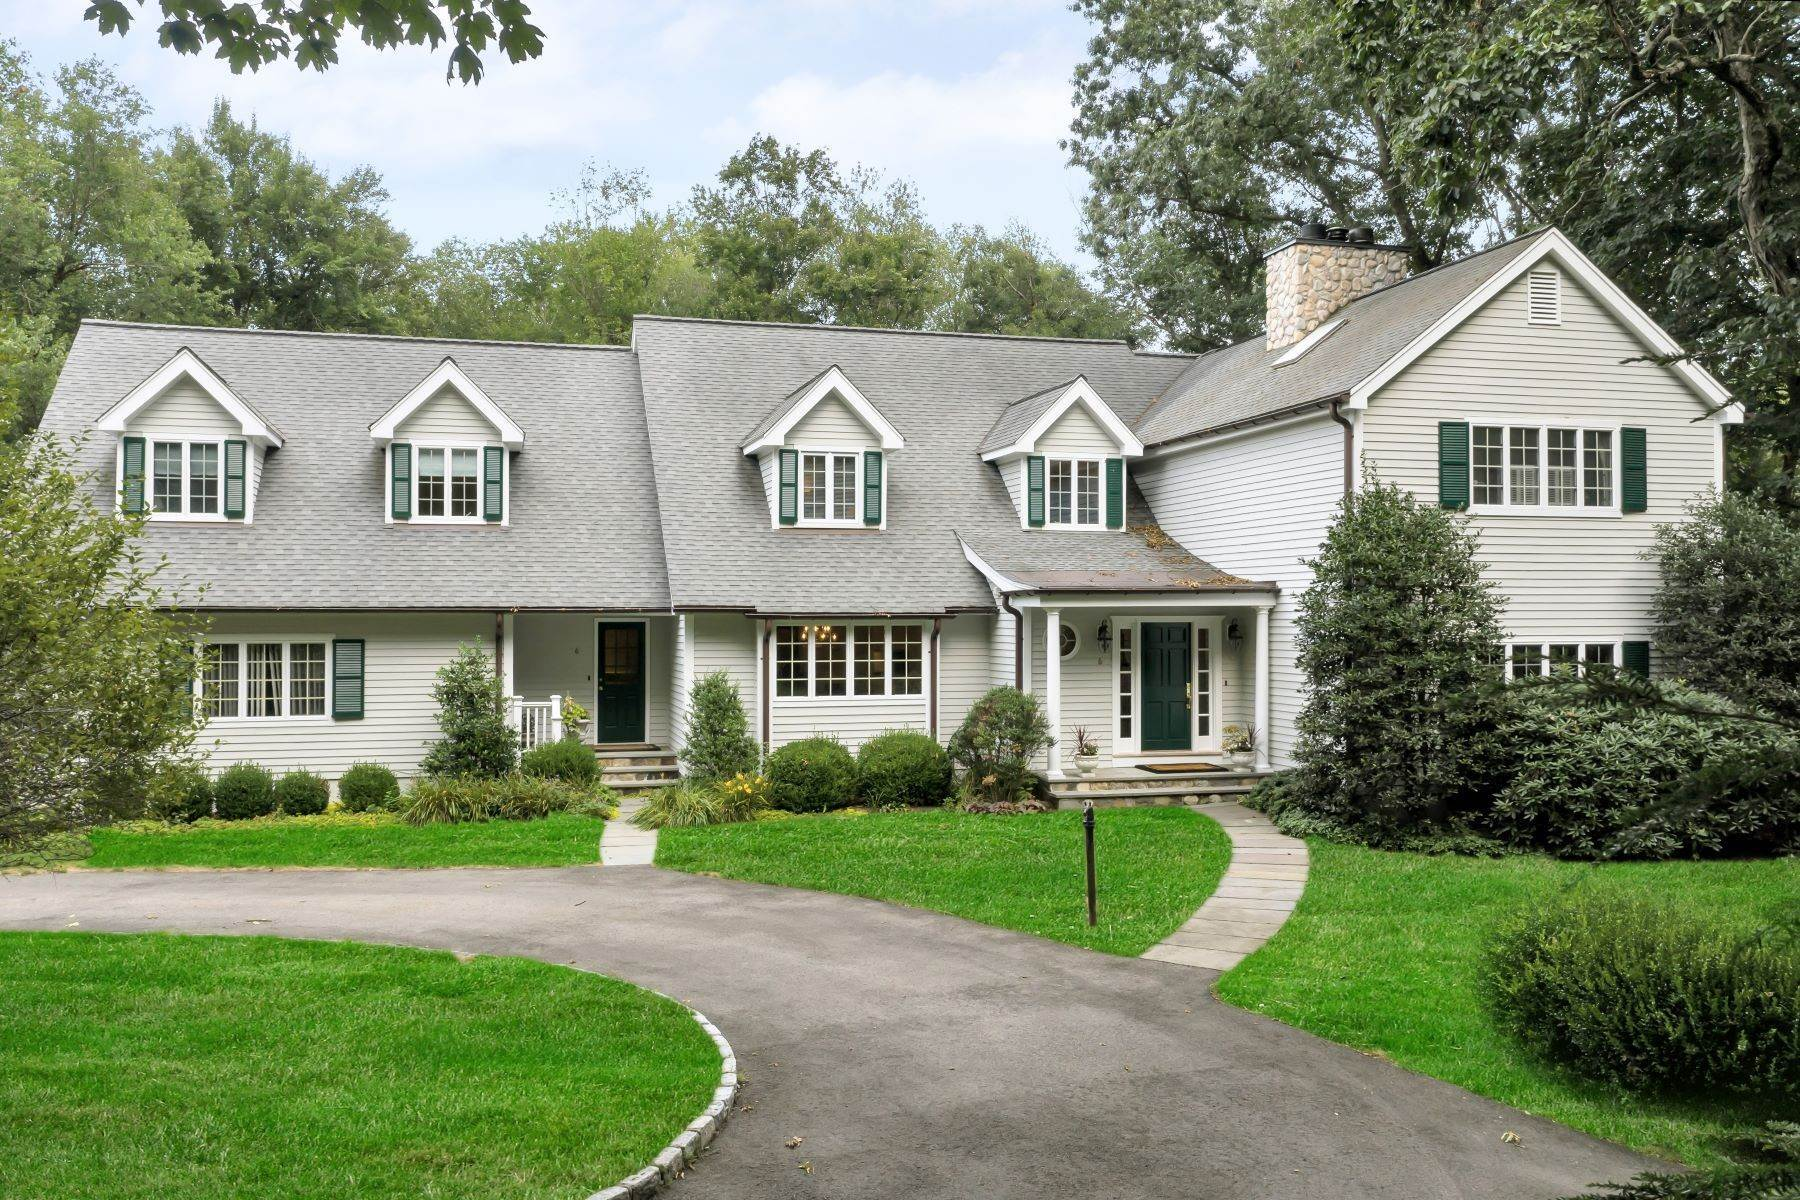 Single Family Homes for Sale at 6 Talmadge Hill Road Darien, Connecticut 06820 United States